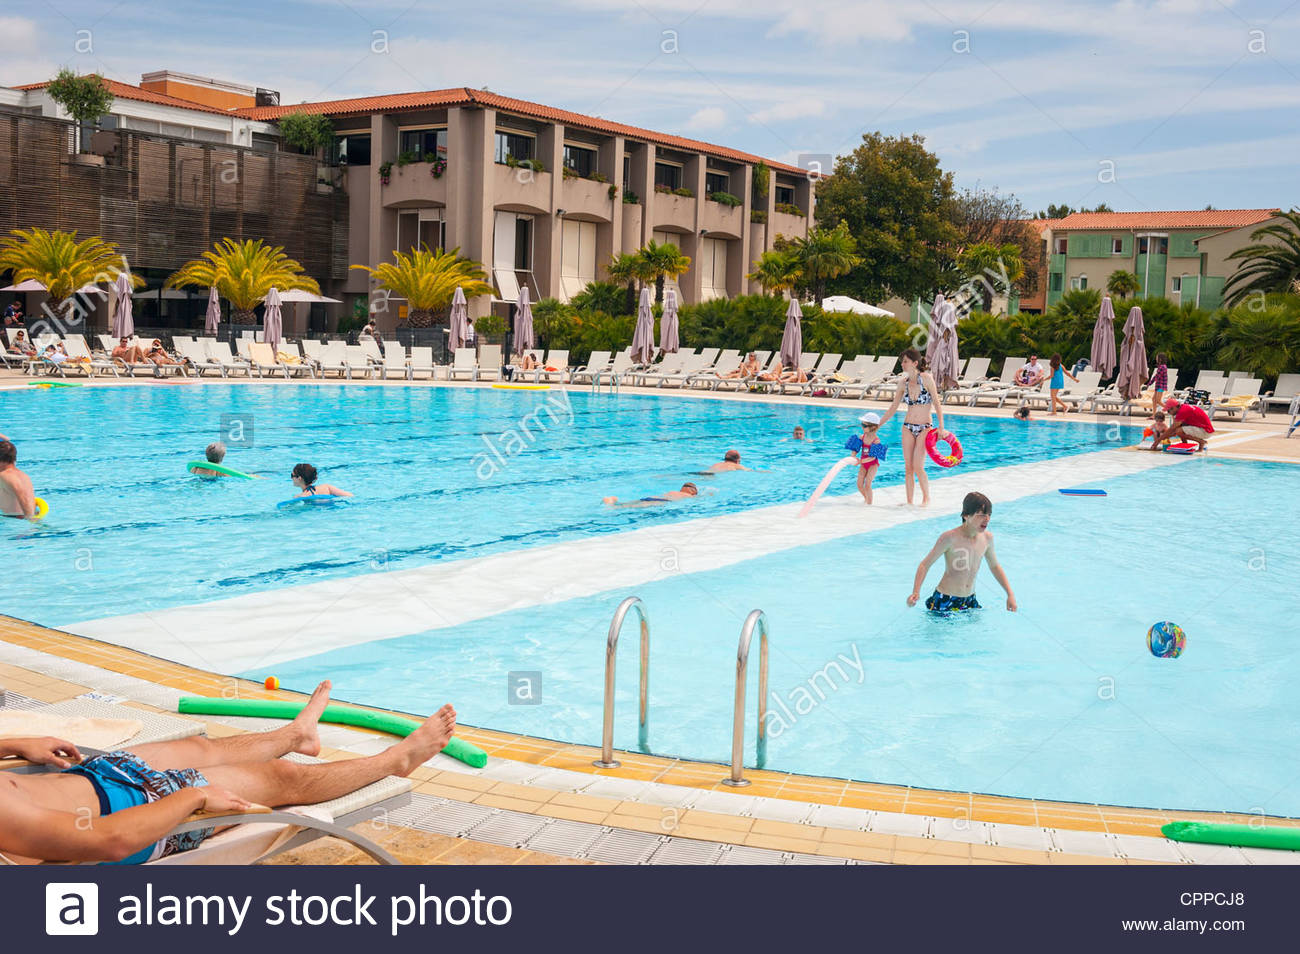 South Of France Province Club Med Opio Swimming Pool Surrounded Stock Photo Royalty Free